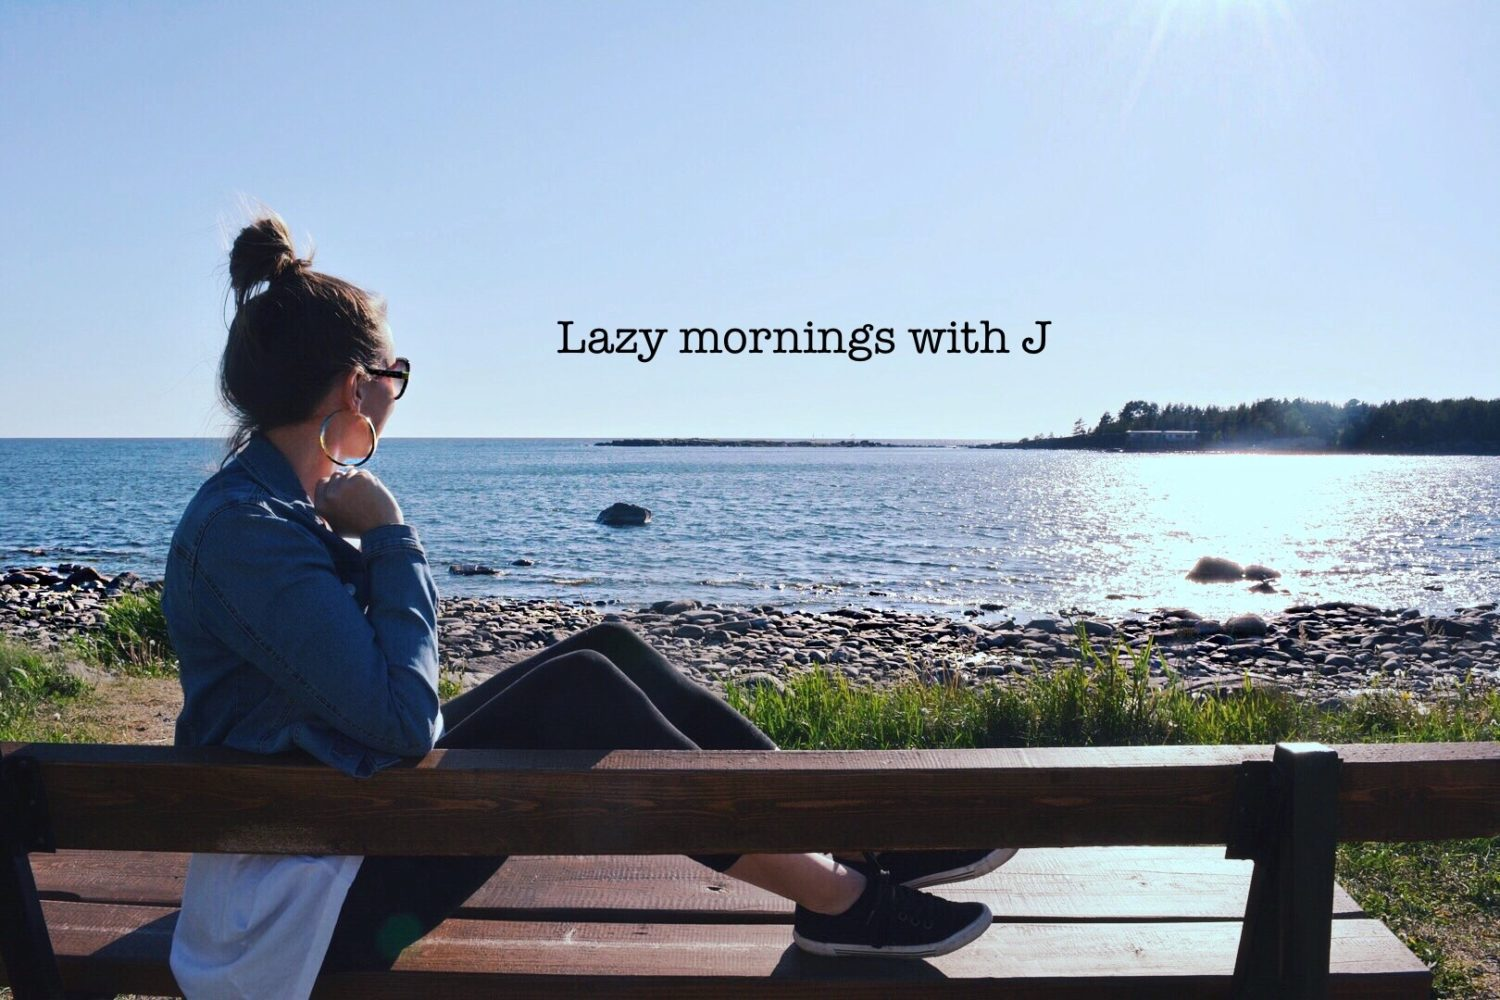 Lazy mornings with J